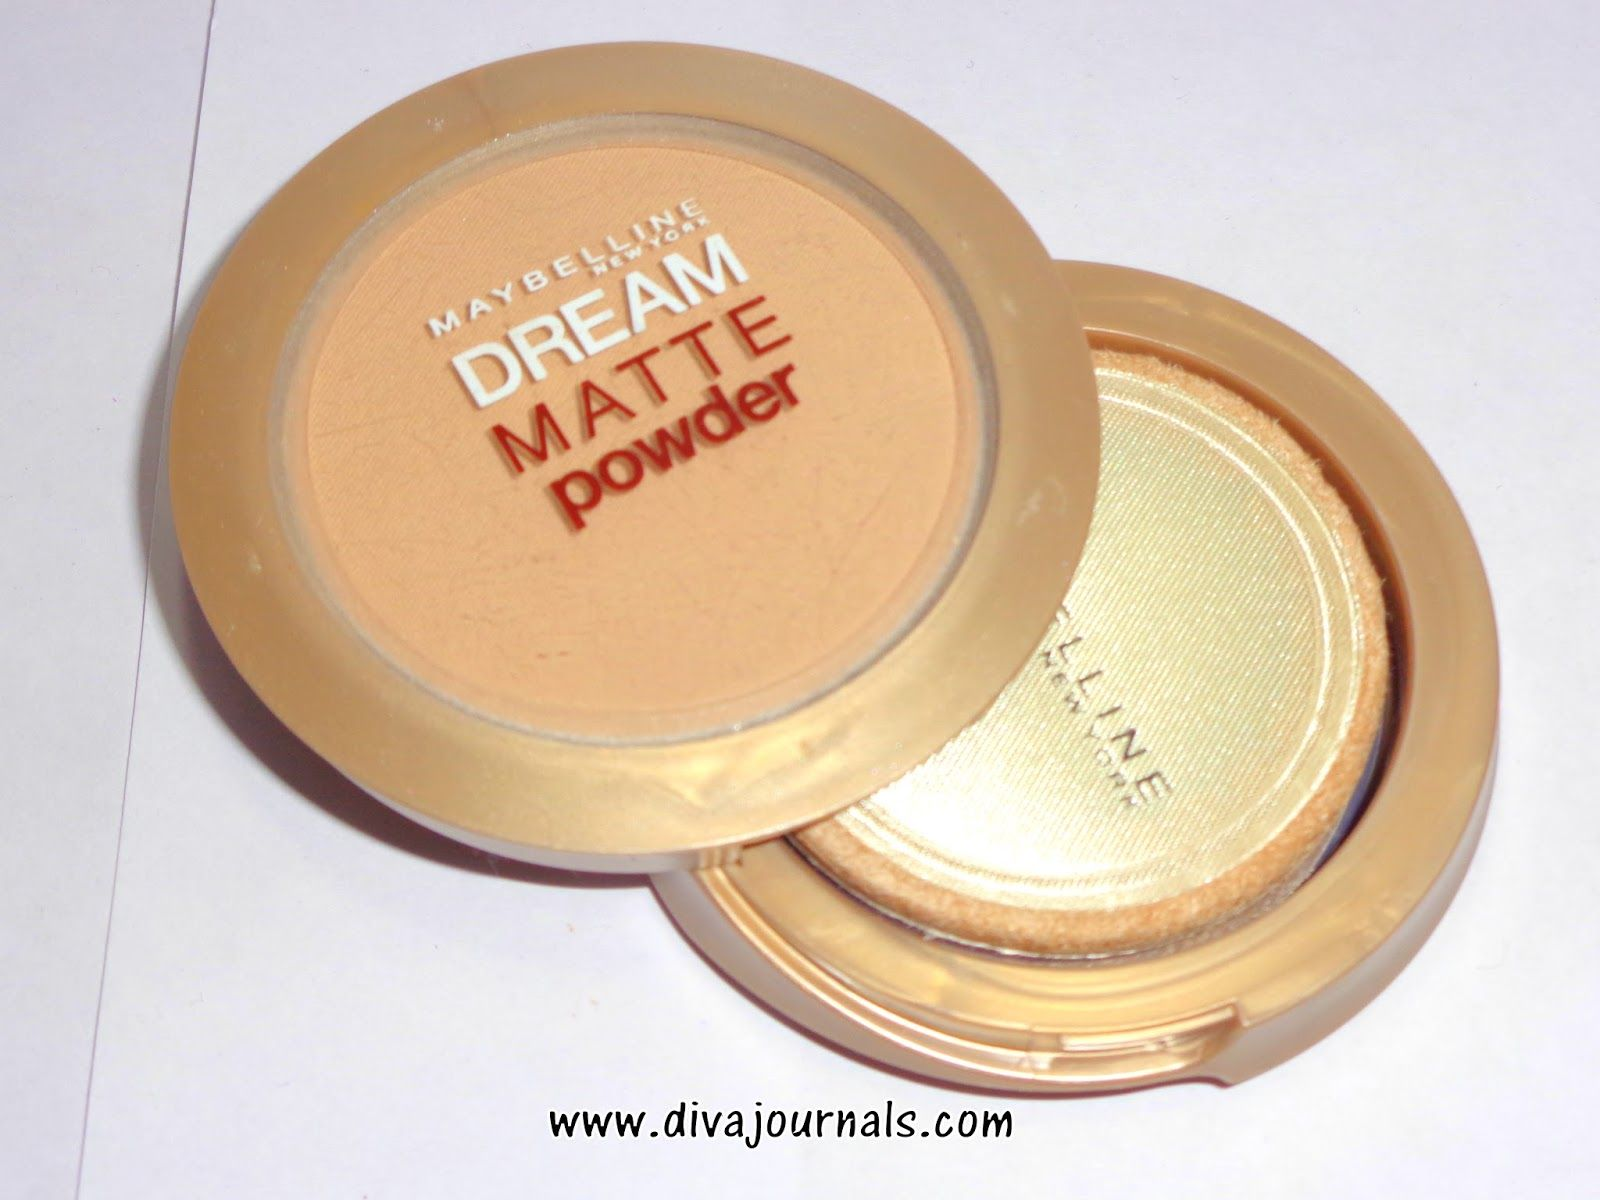 Best Compact Powders For Oilyacne Prone Skin